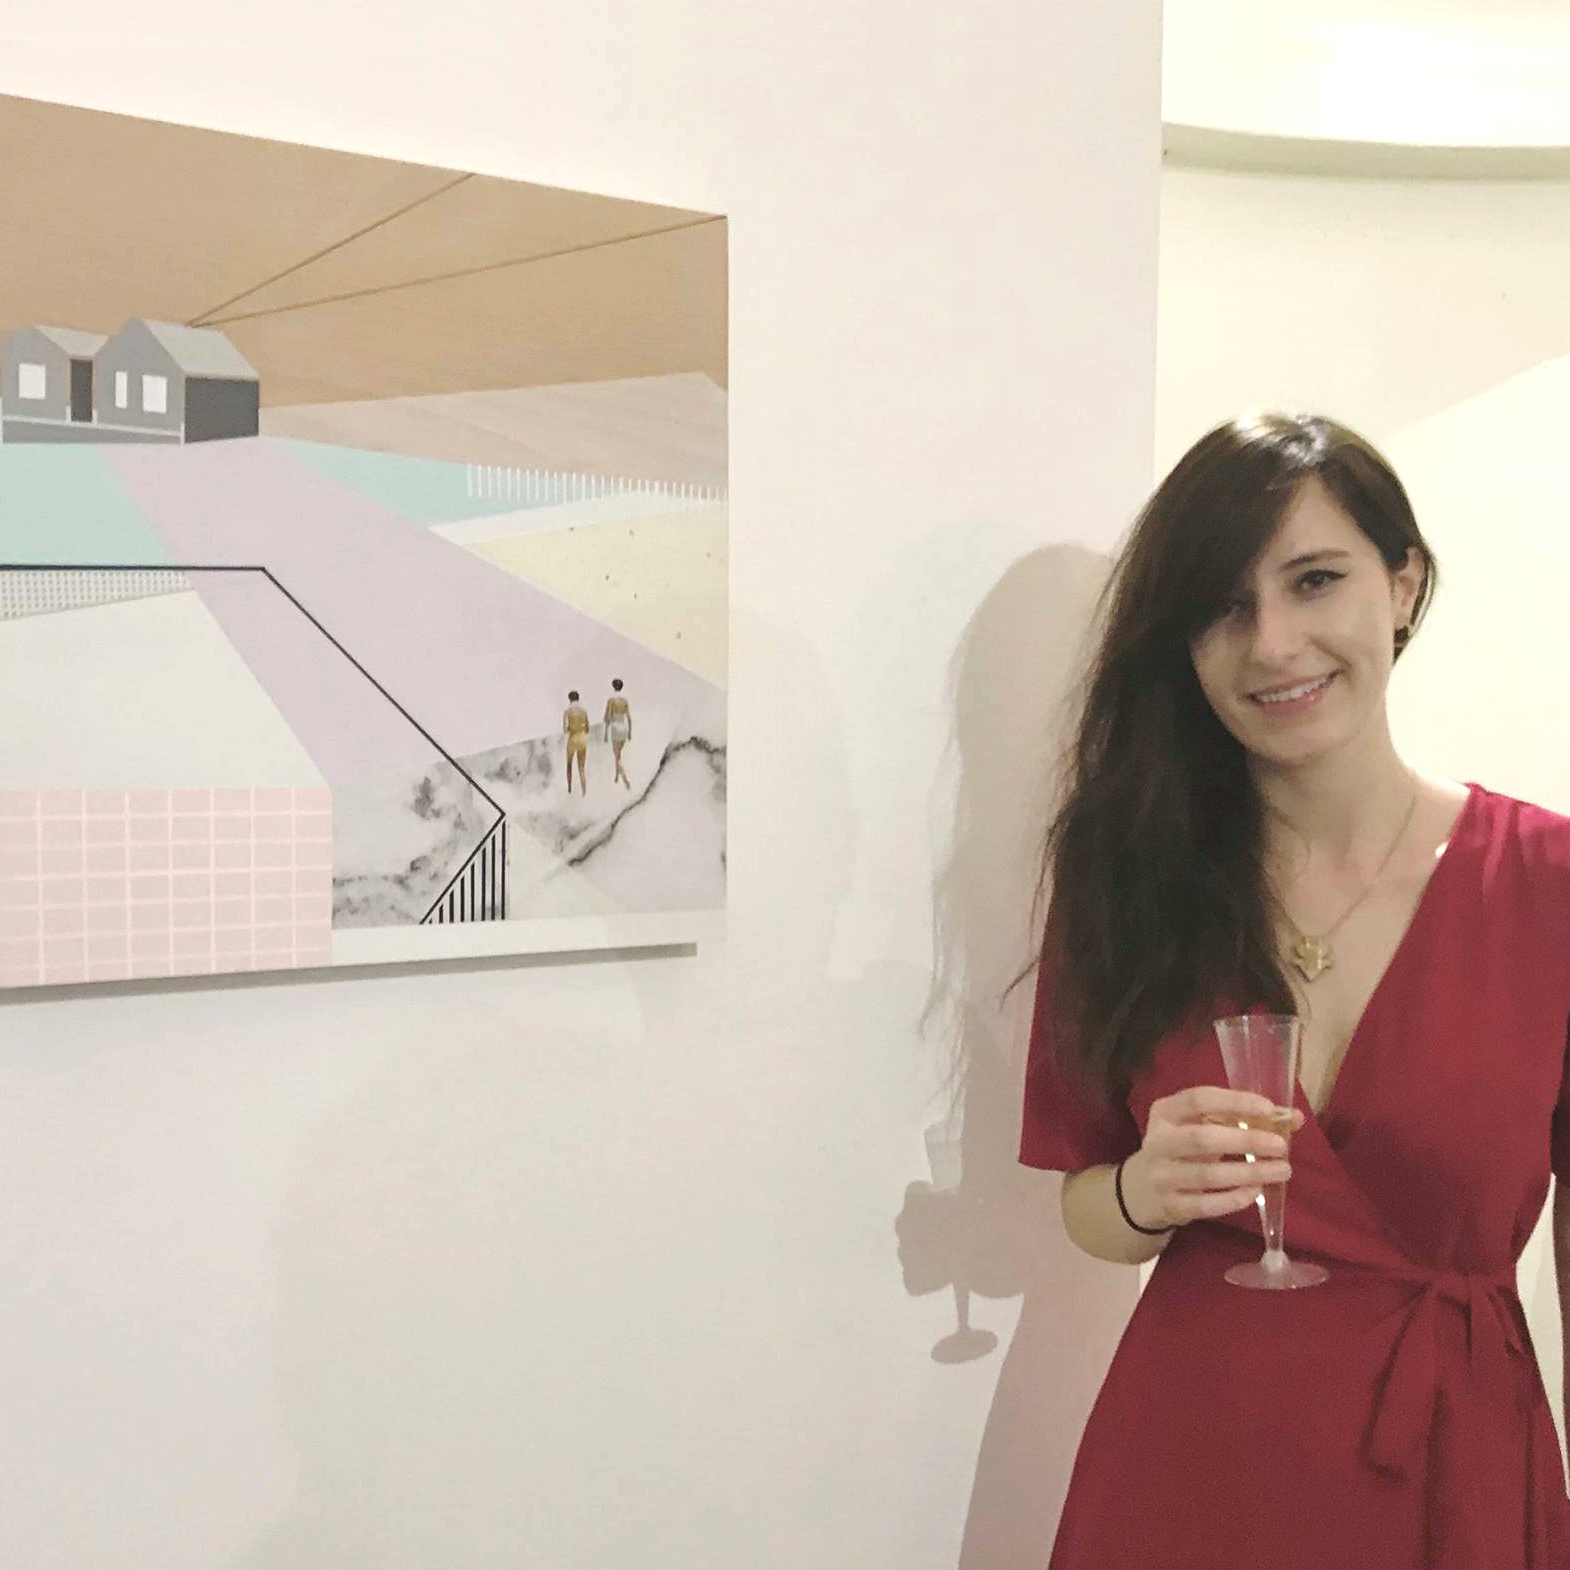 Our warm congratulations to Mairi Timoney, who was awarded the Silvana Editoriale Prize at The Art Prize CBM in Turin.